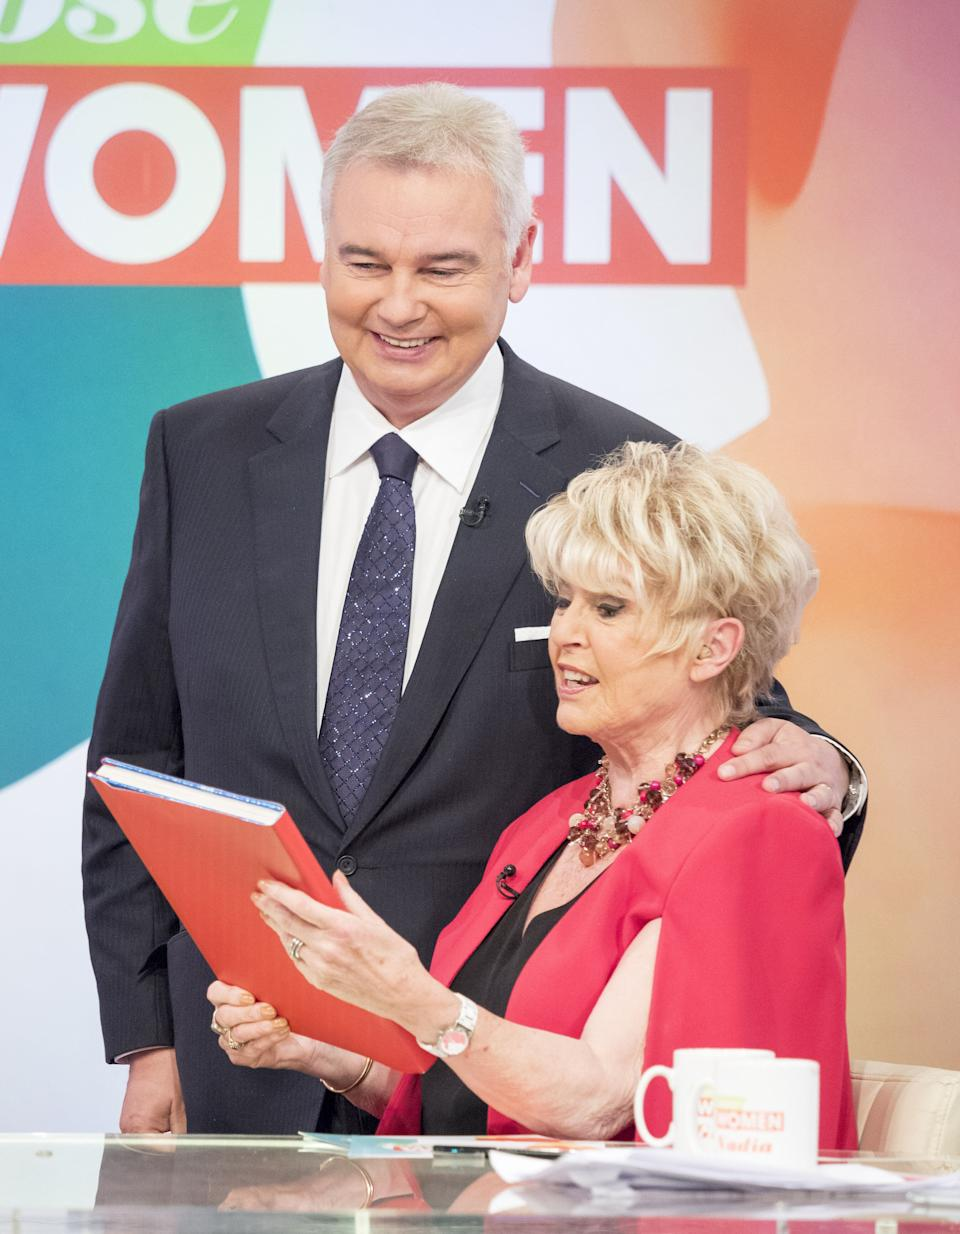 Gloria Hunniford is good friends with Eamonn and Ruth (Photo: Ken McKay/ITV/Shutterstock)